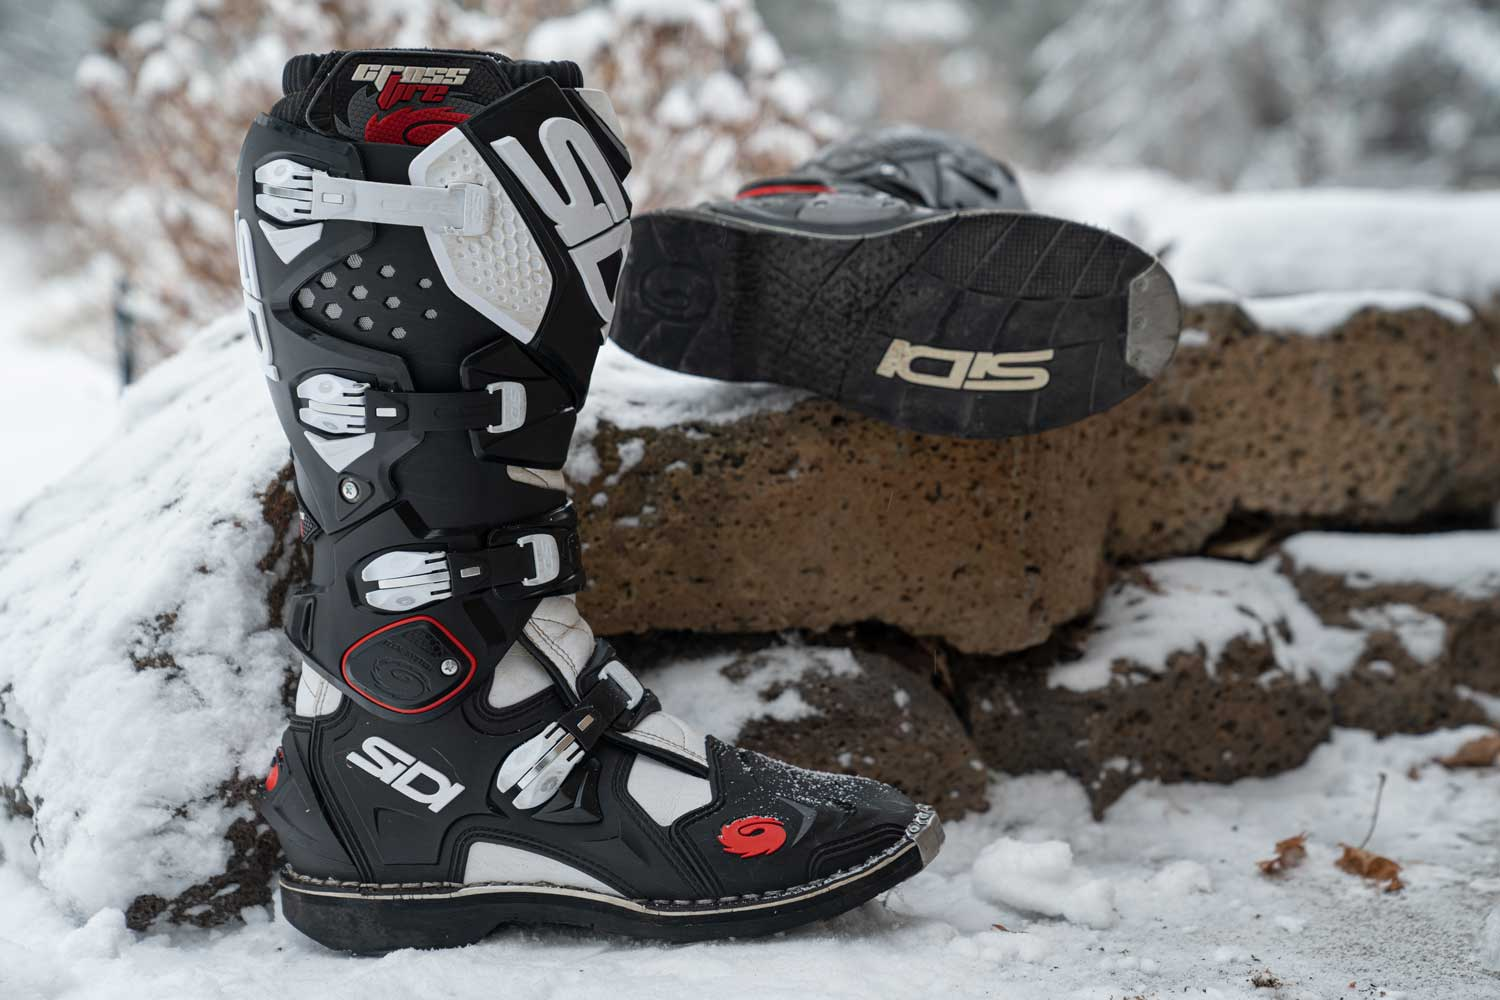 Sidi Crossfire 2 TA Review